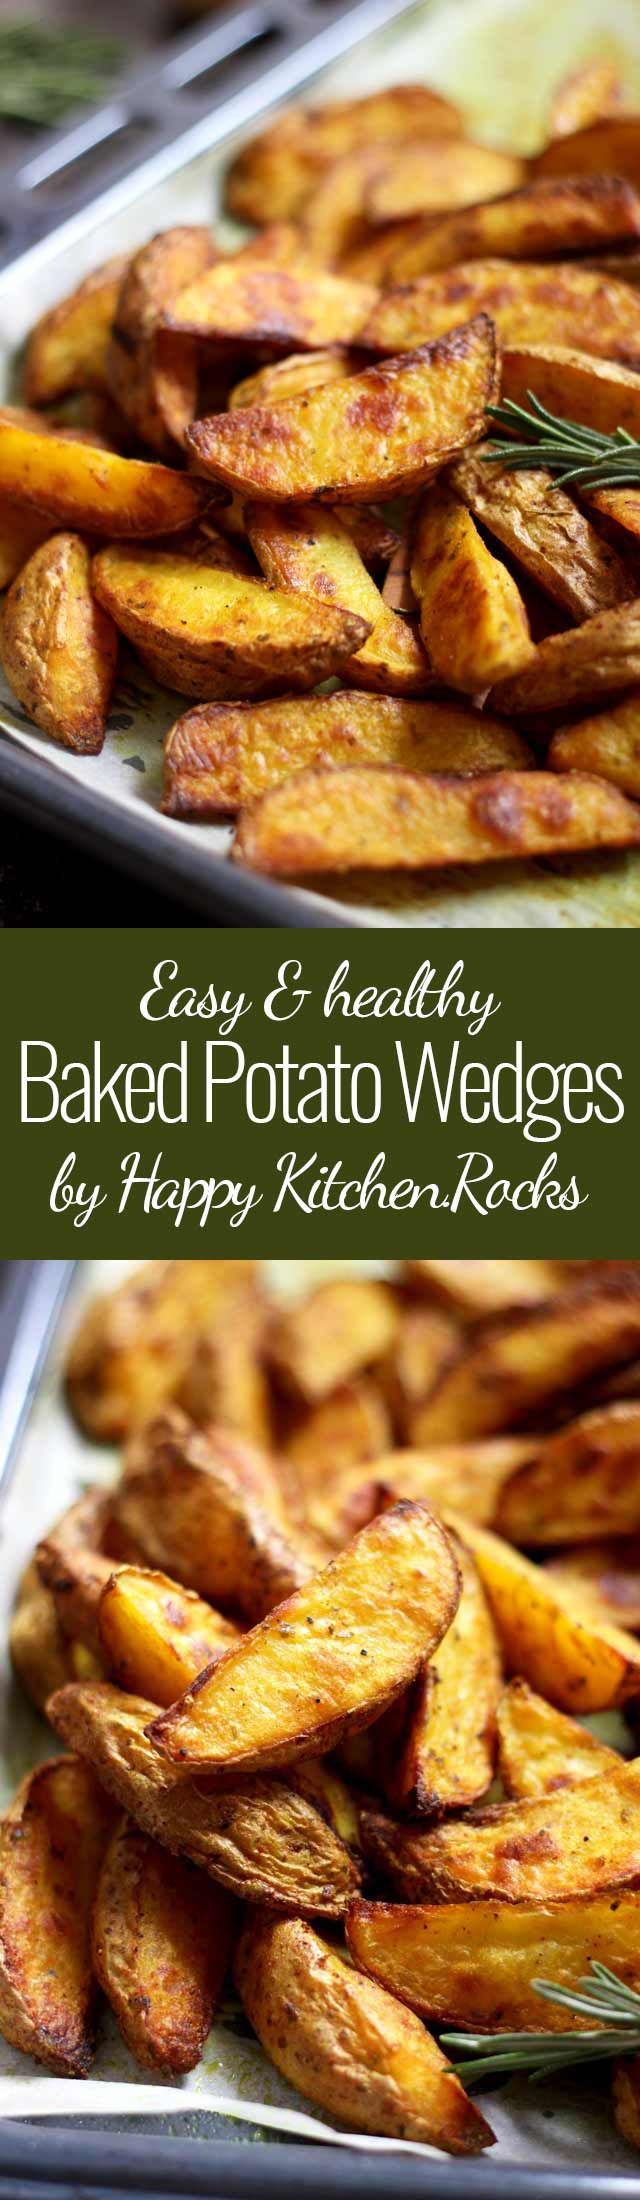 Easy and perfectly crispy oven Baked Potato Wedges will become your go-to side dish or appetizer. Much healthier than french fries and the tastiest potatoes you'll ever taste! #potatoes #potatowedges #glutenfree #sidedish #wedges #frenchfries #potatofries #plantbased #plantbasedeating #healthyeating #vegetarian #recipe #recipes #vegan #appetizer #food #comfortfood #sheetpan #easyappetizer #easyrecipe #healthyrecipe